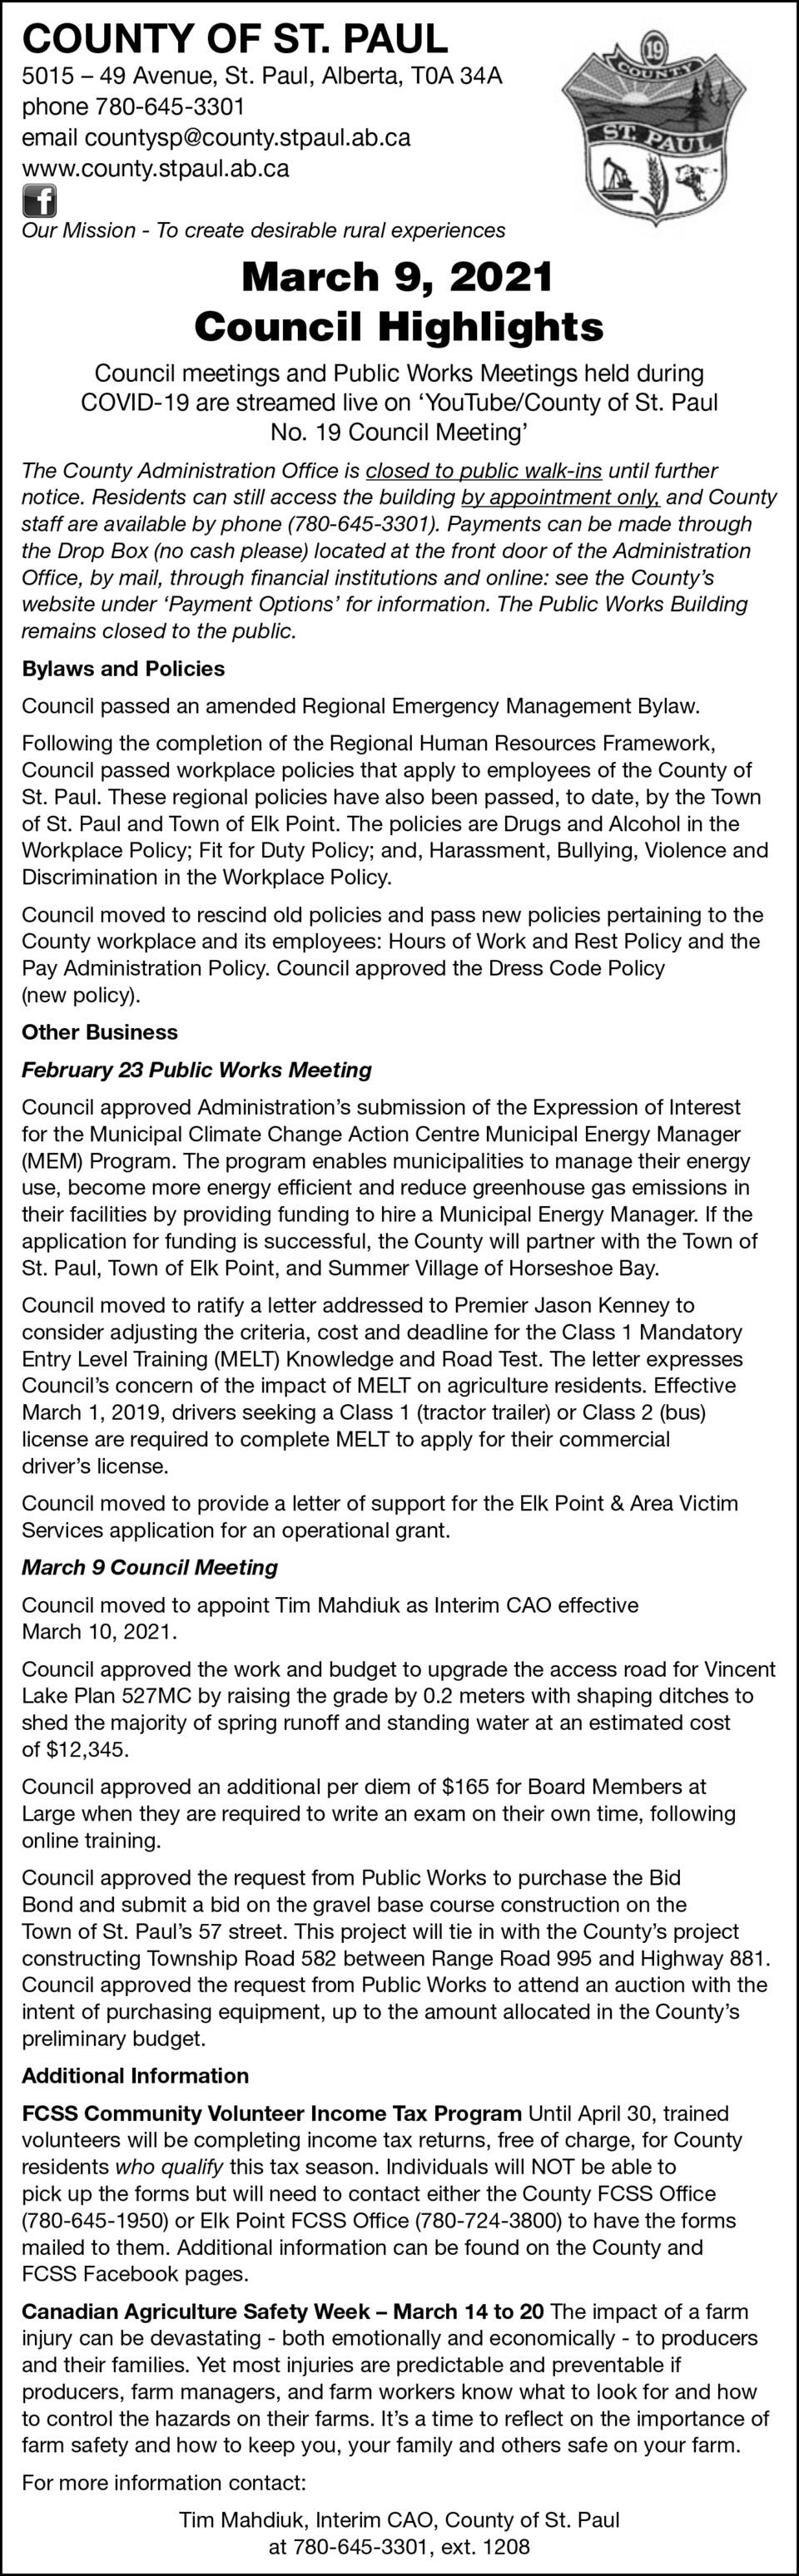 County of St. Paul Council Highlights